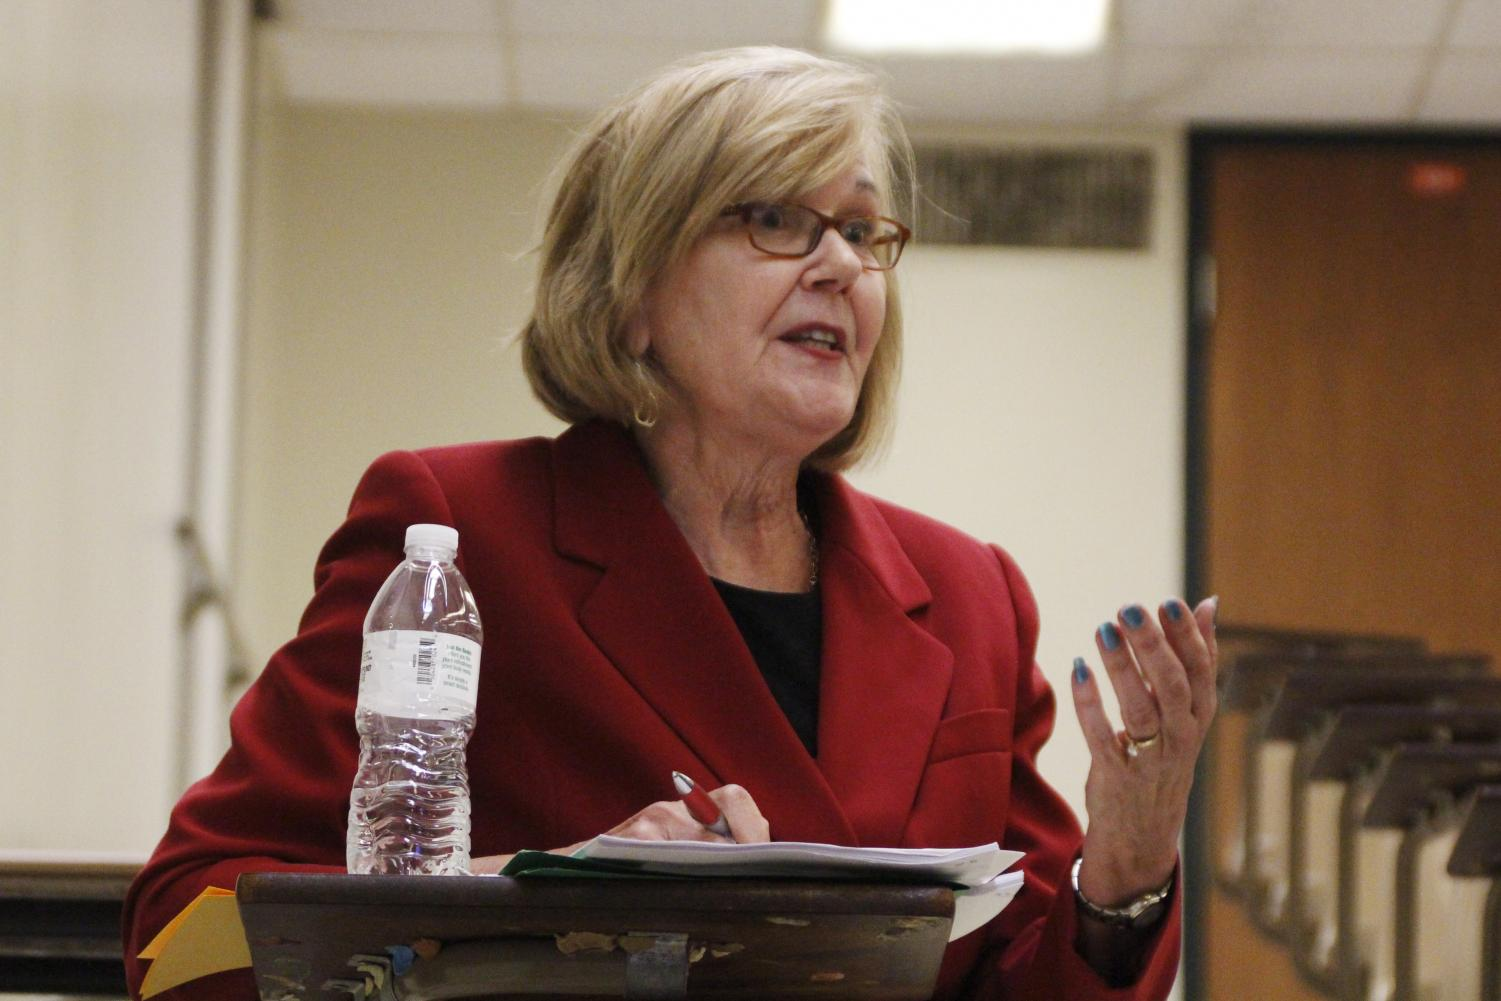 The university boasts numerous professors with years of experience in the communication field such as Cheryl Settoon, instructor of communication, as a reporter and producer at stations such as CBN.